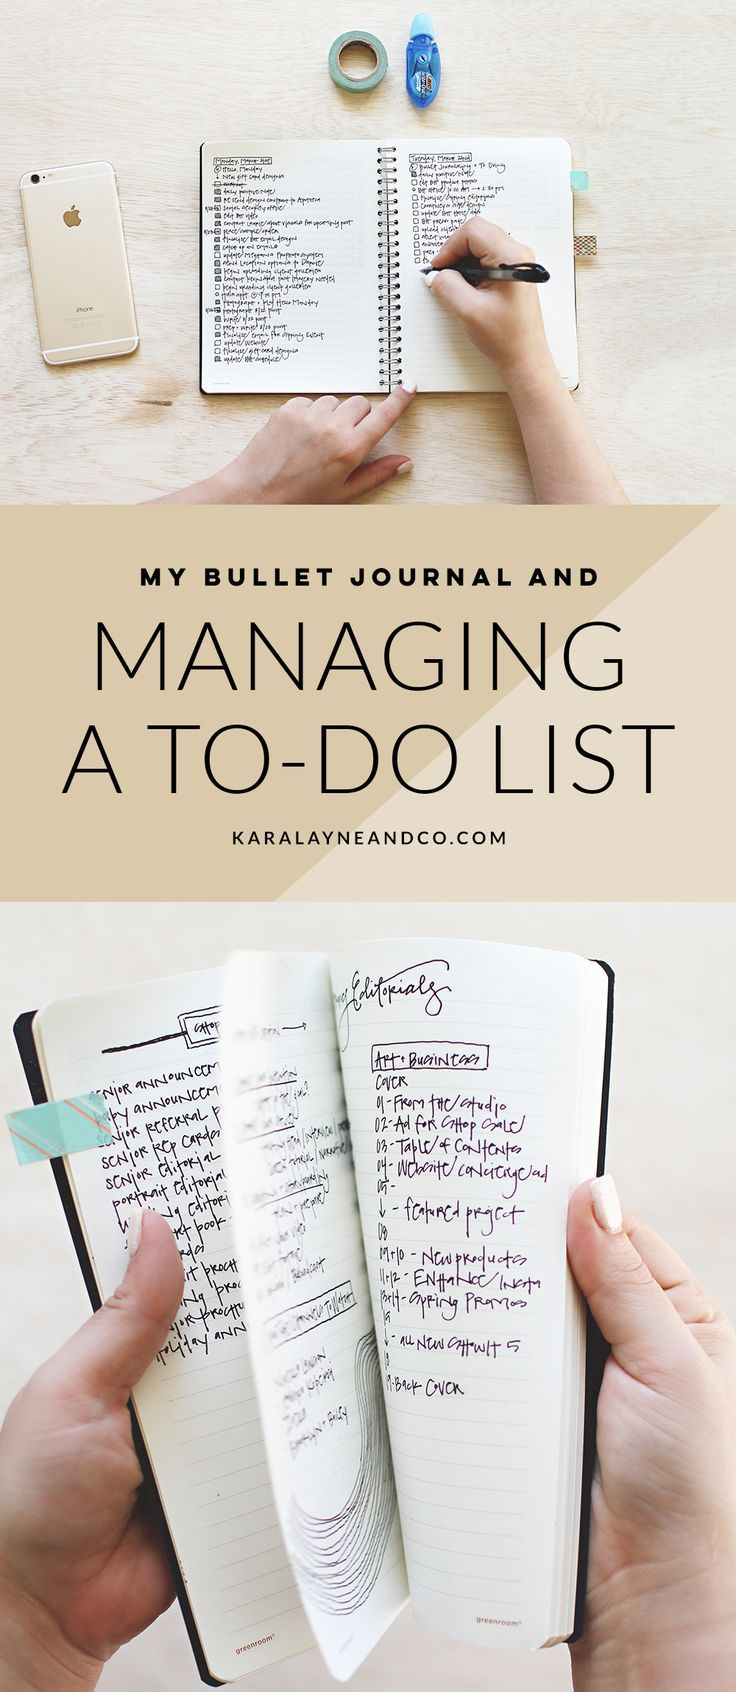 My bullet journal and managing a to-do list   #BulletJournal #Organization #HowTo